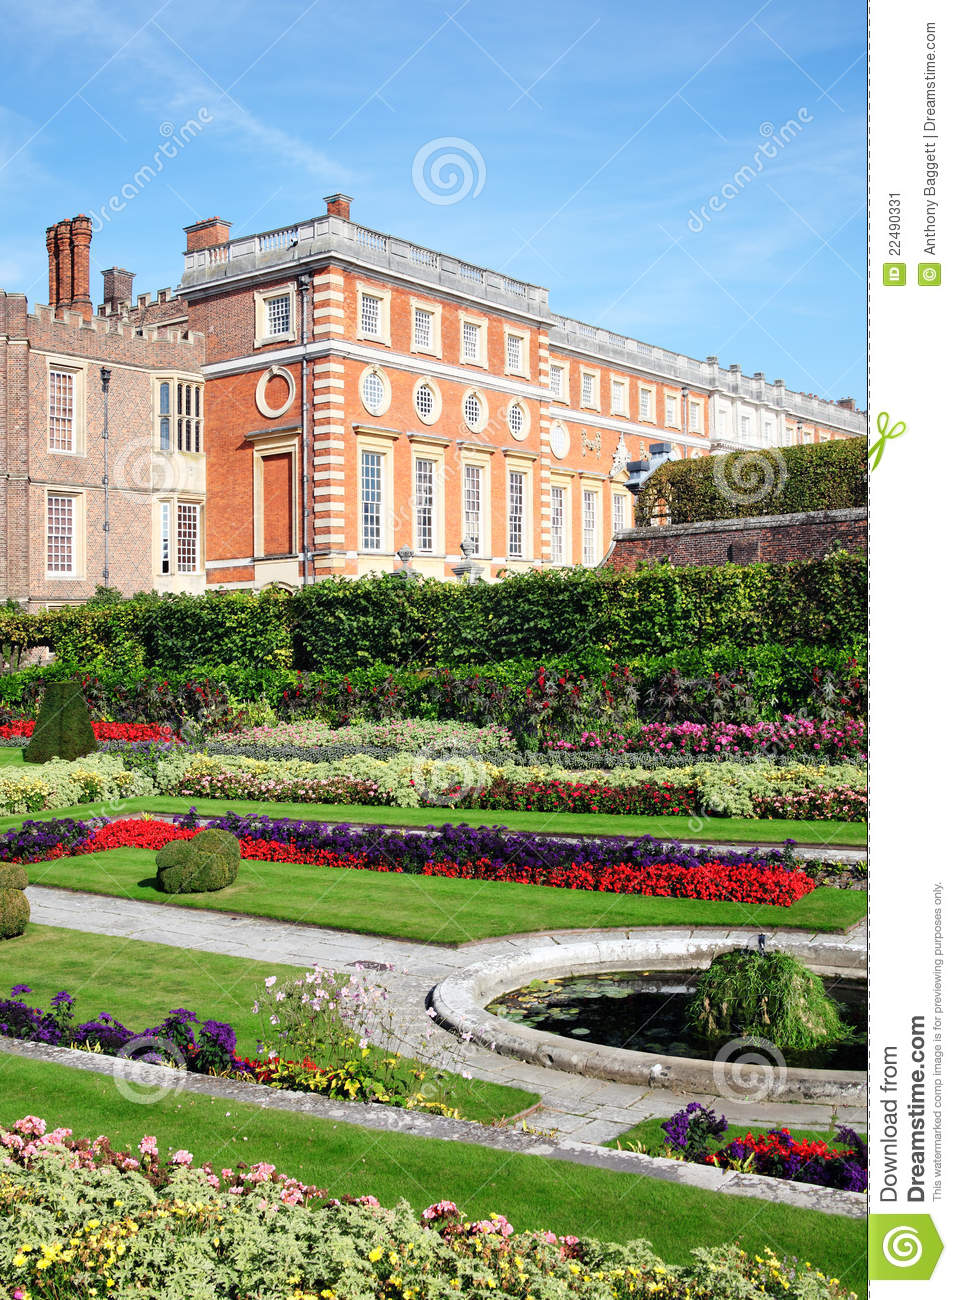 London: Privattour durch den Hampton Court Palace